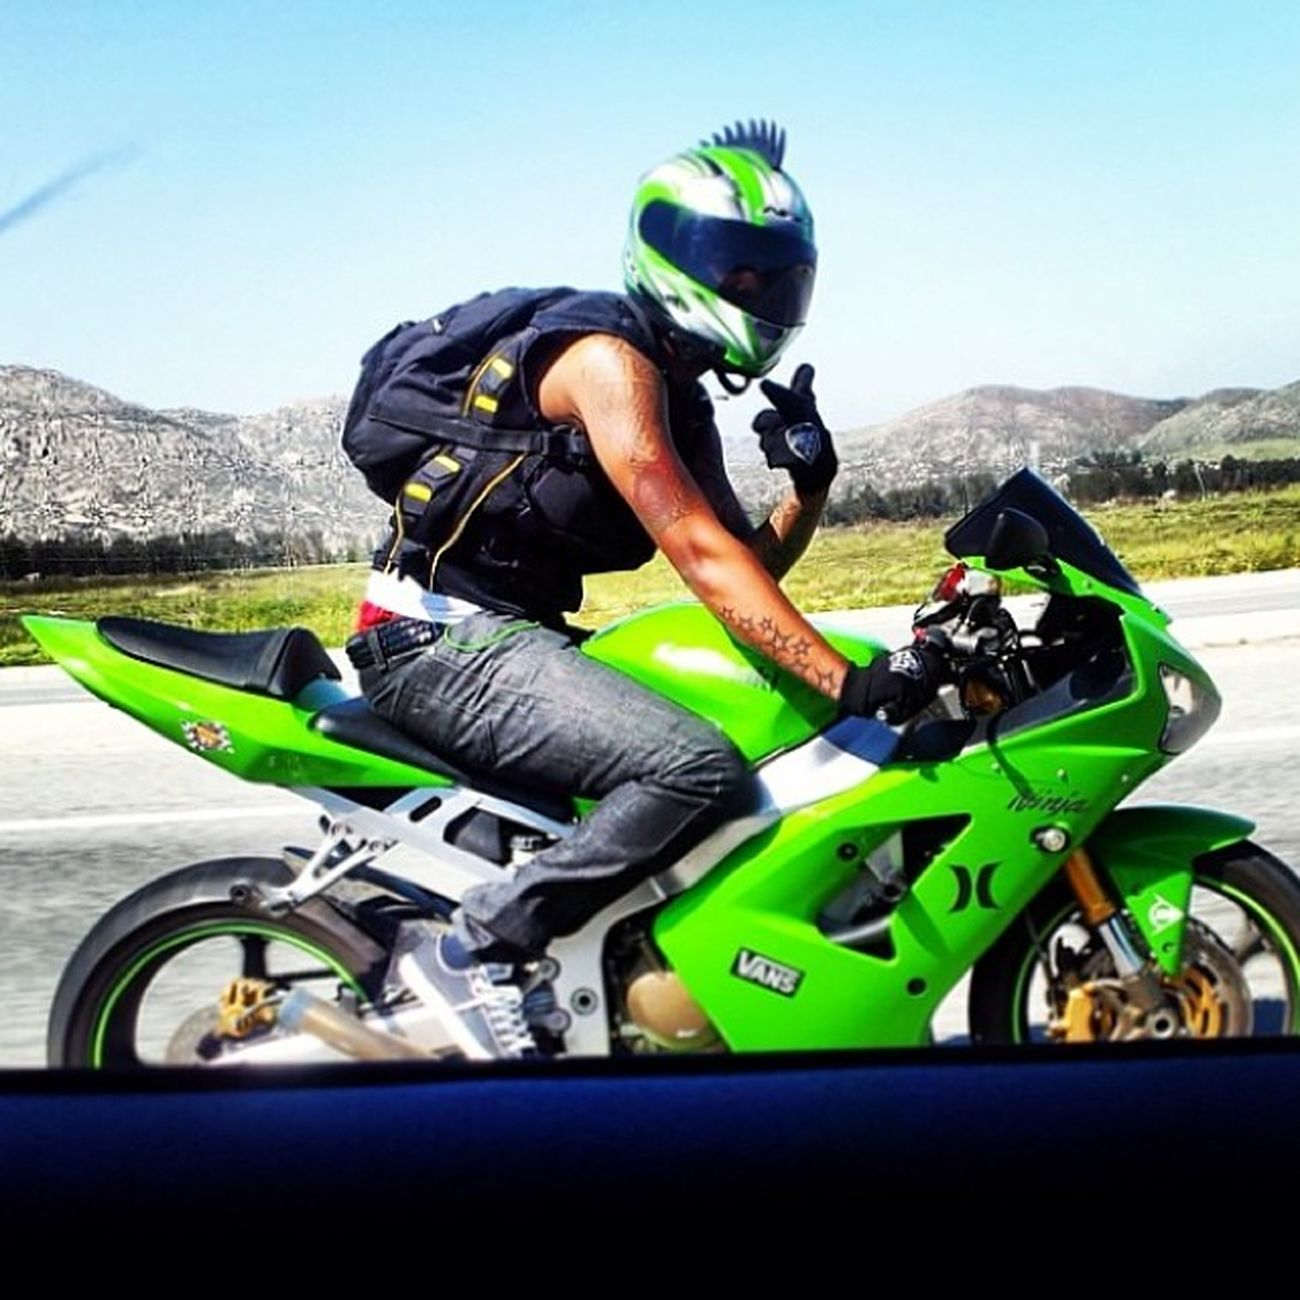 Happy 22nd bday to my bro @shaad_15!! I'm glad to have you and your family in my life. Have a great day man! Peace & love. Kawasaki 636 Bilelife Ridesafe Riderich Weridetogetherwedietogether Badboysforlife